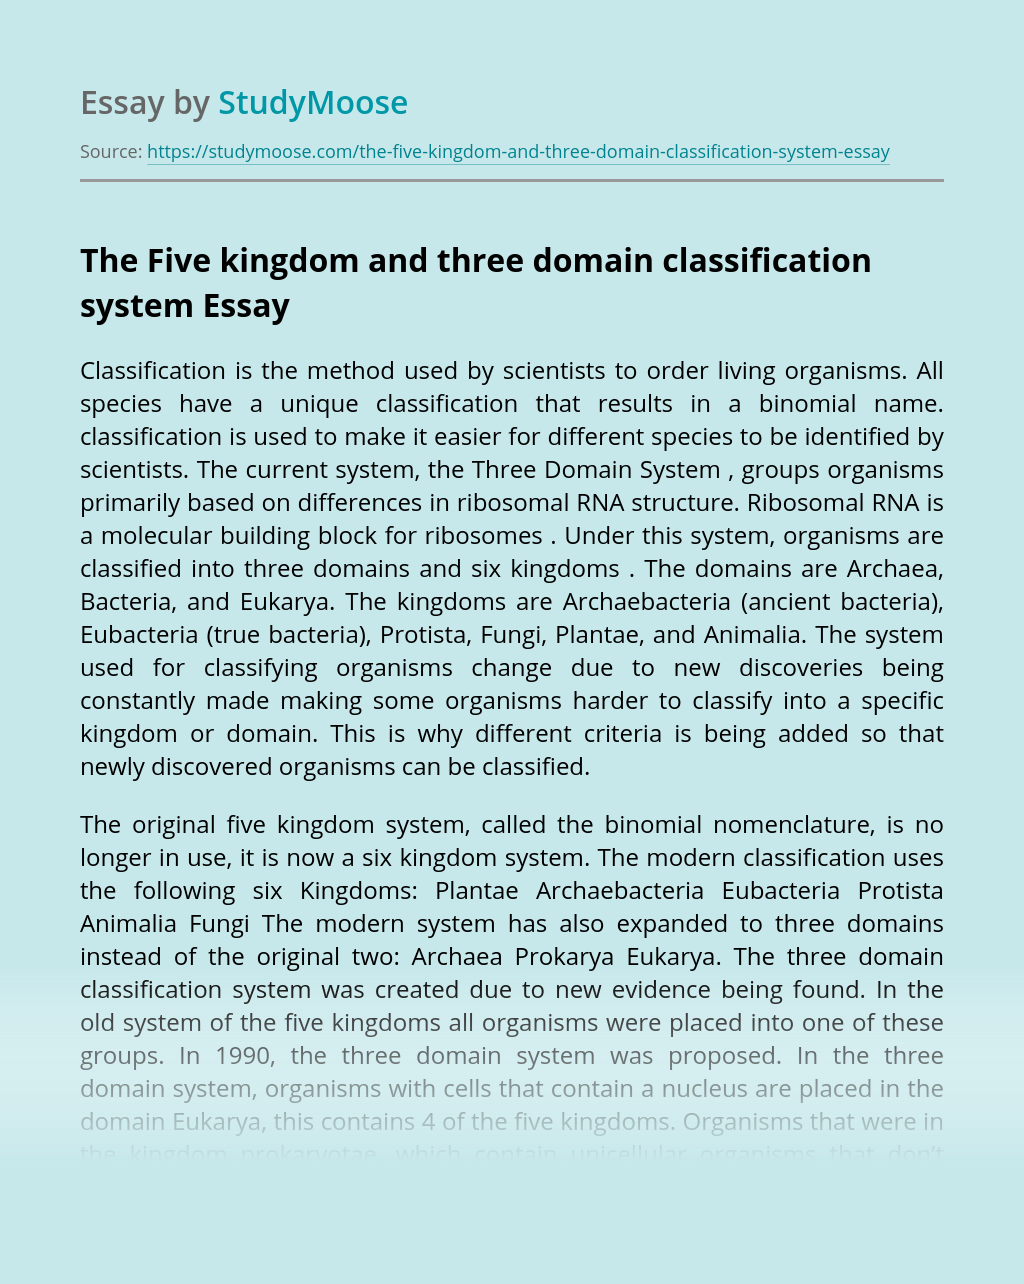 The Five Kingdom and Three Domain Classification System